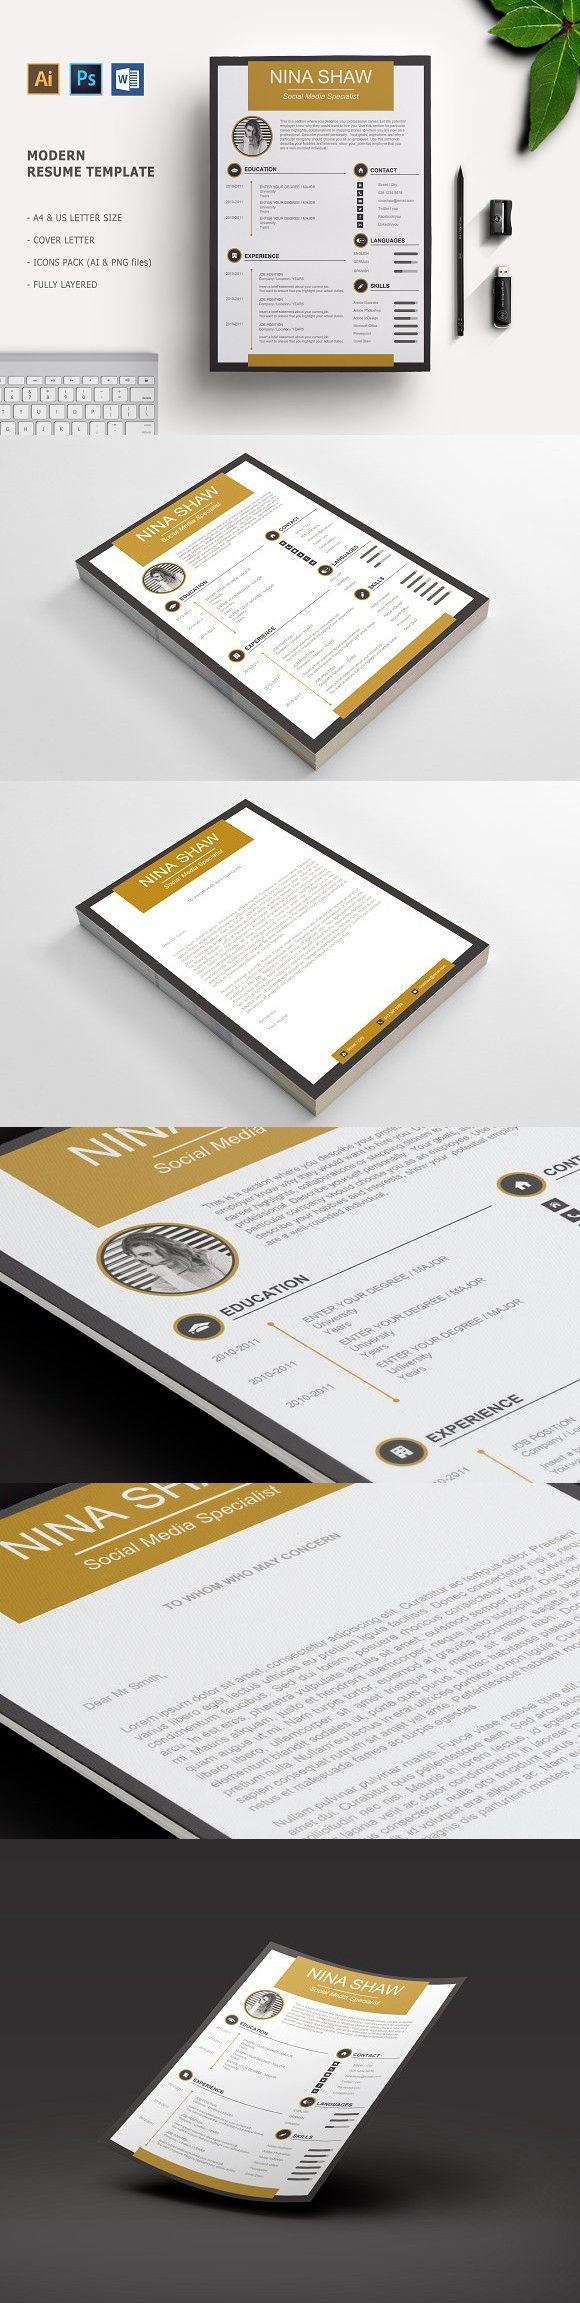 Aurora Resume Template 89 best RESUMESCARDS images